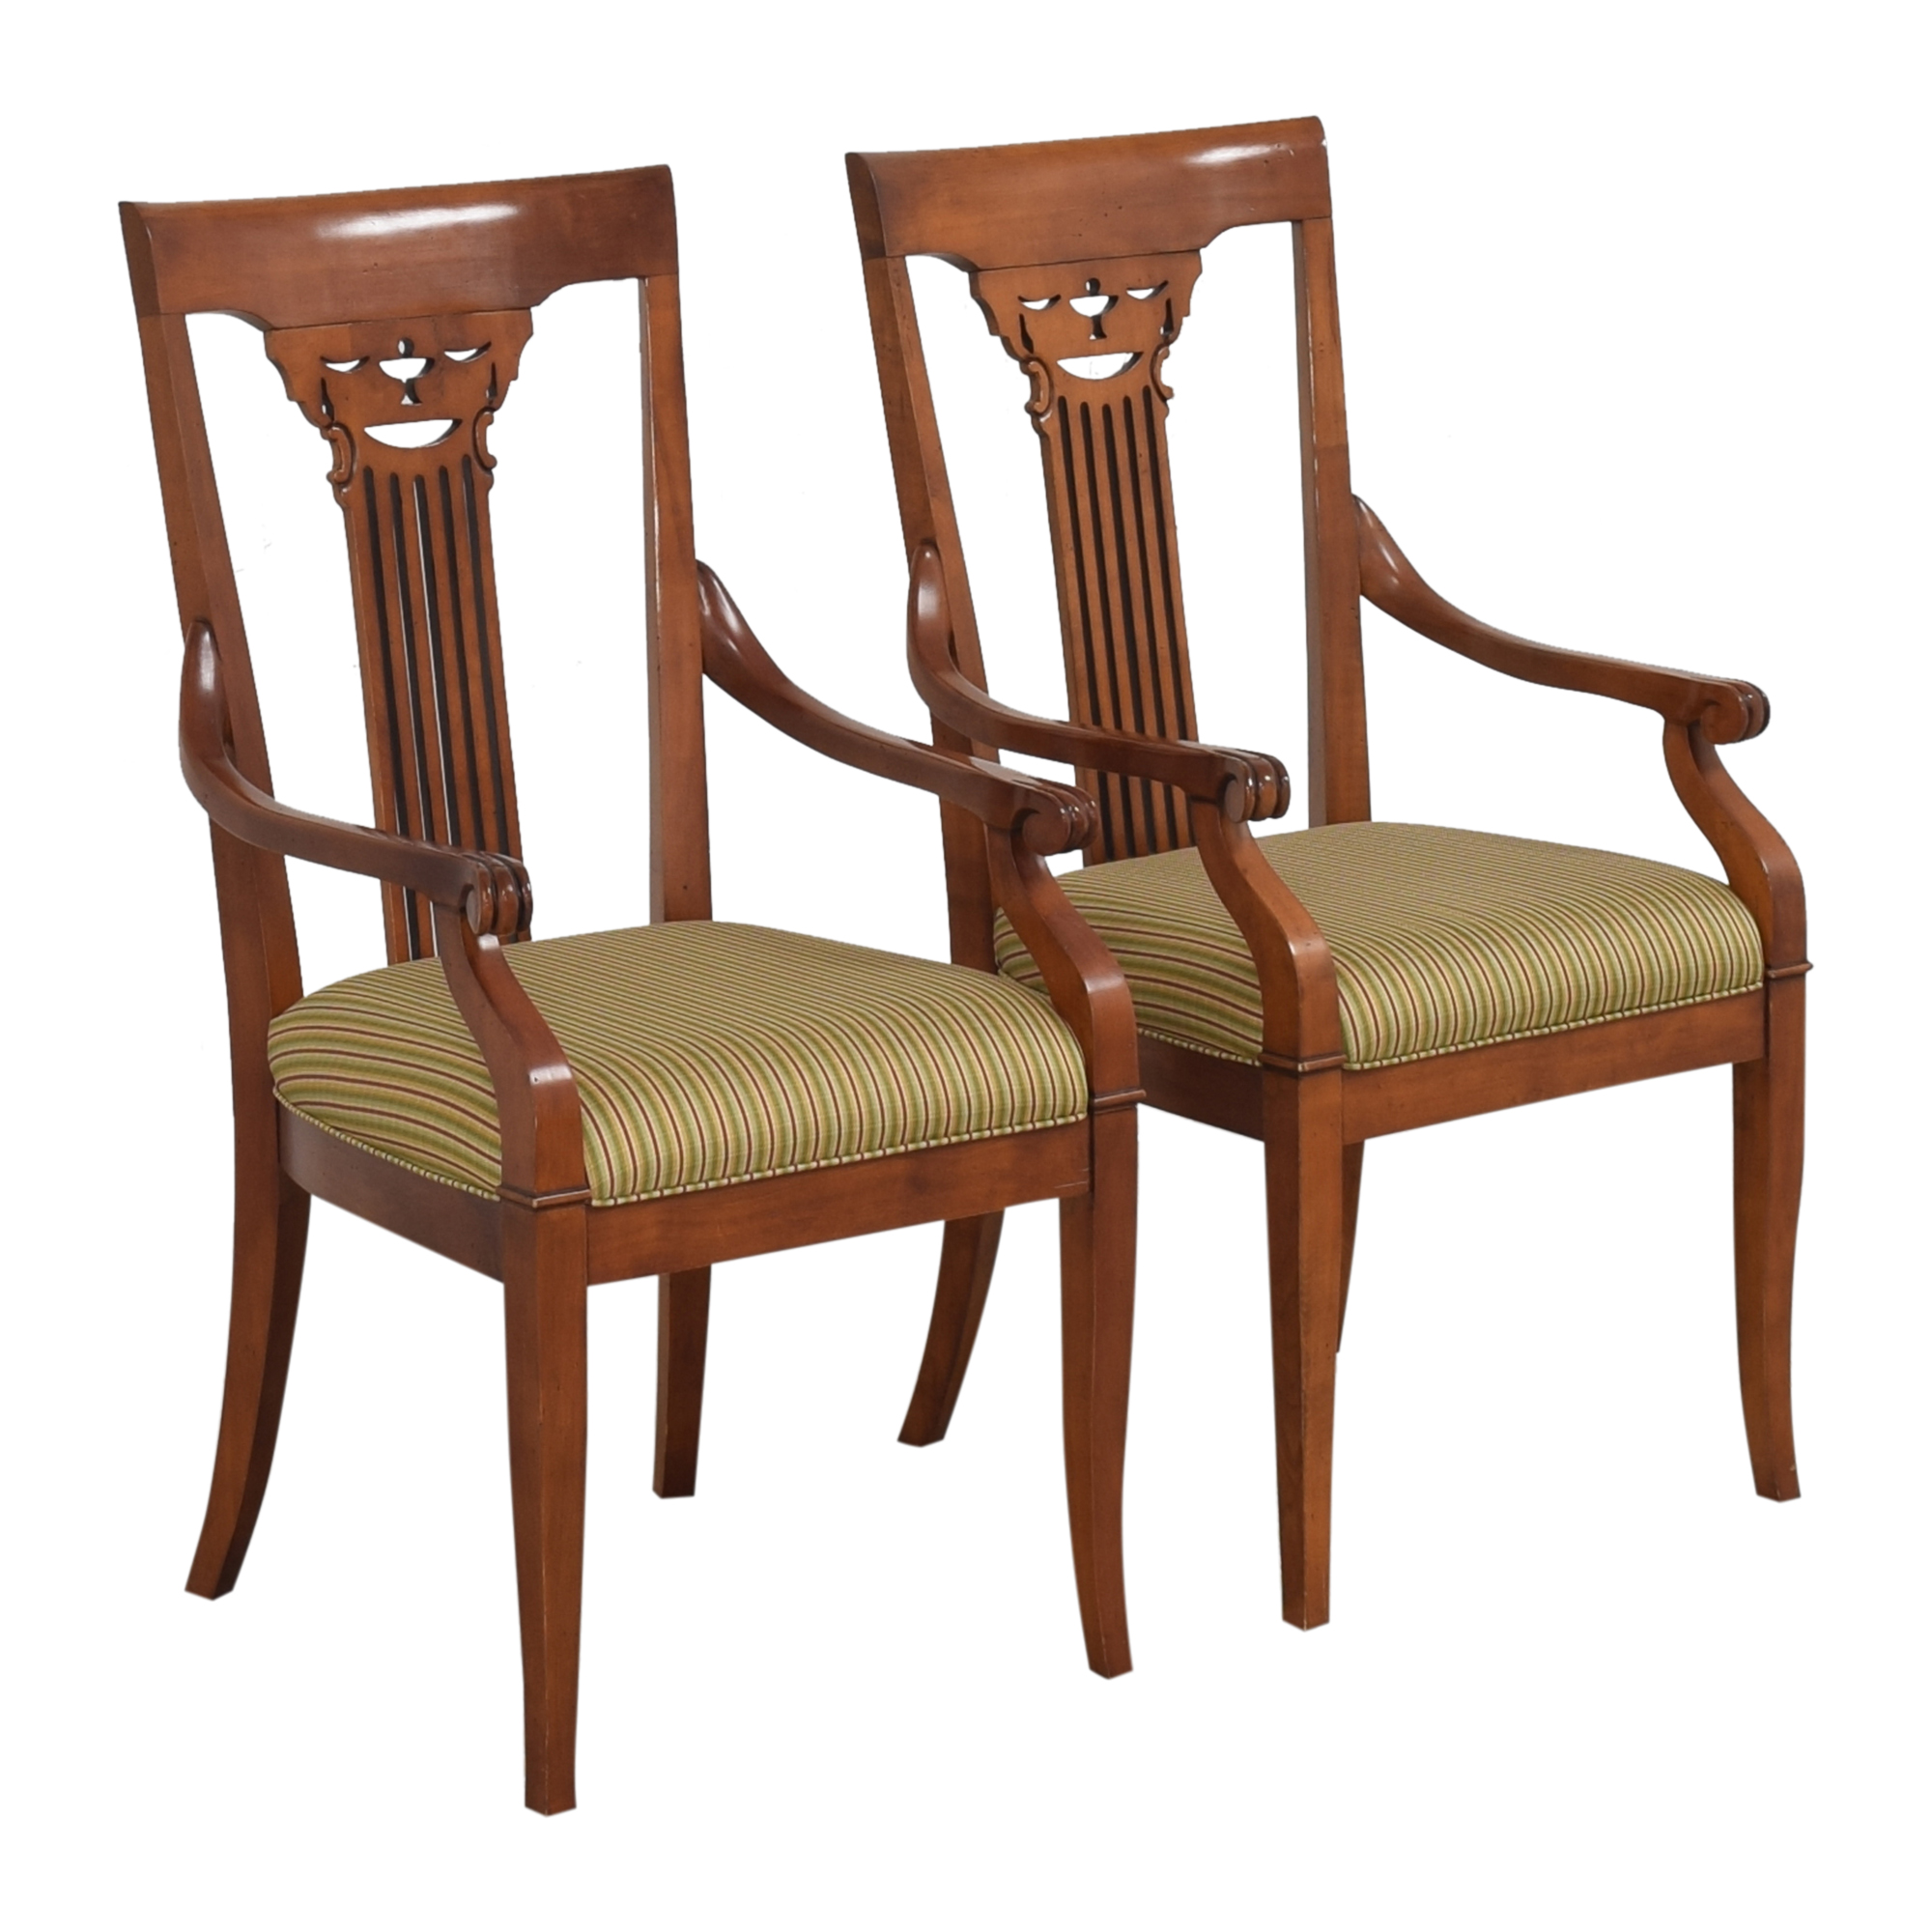 Harden Harden Dining Arm Chairs multi